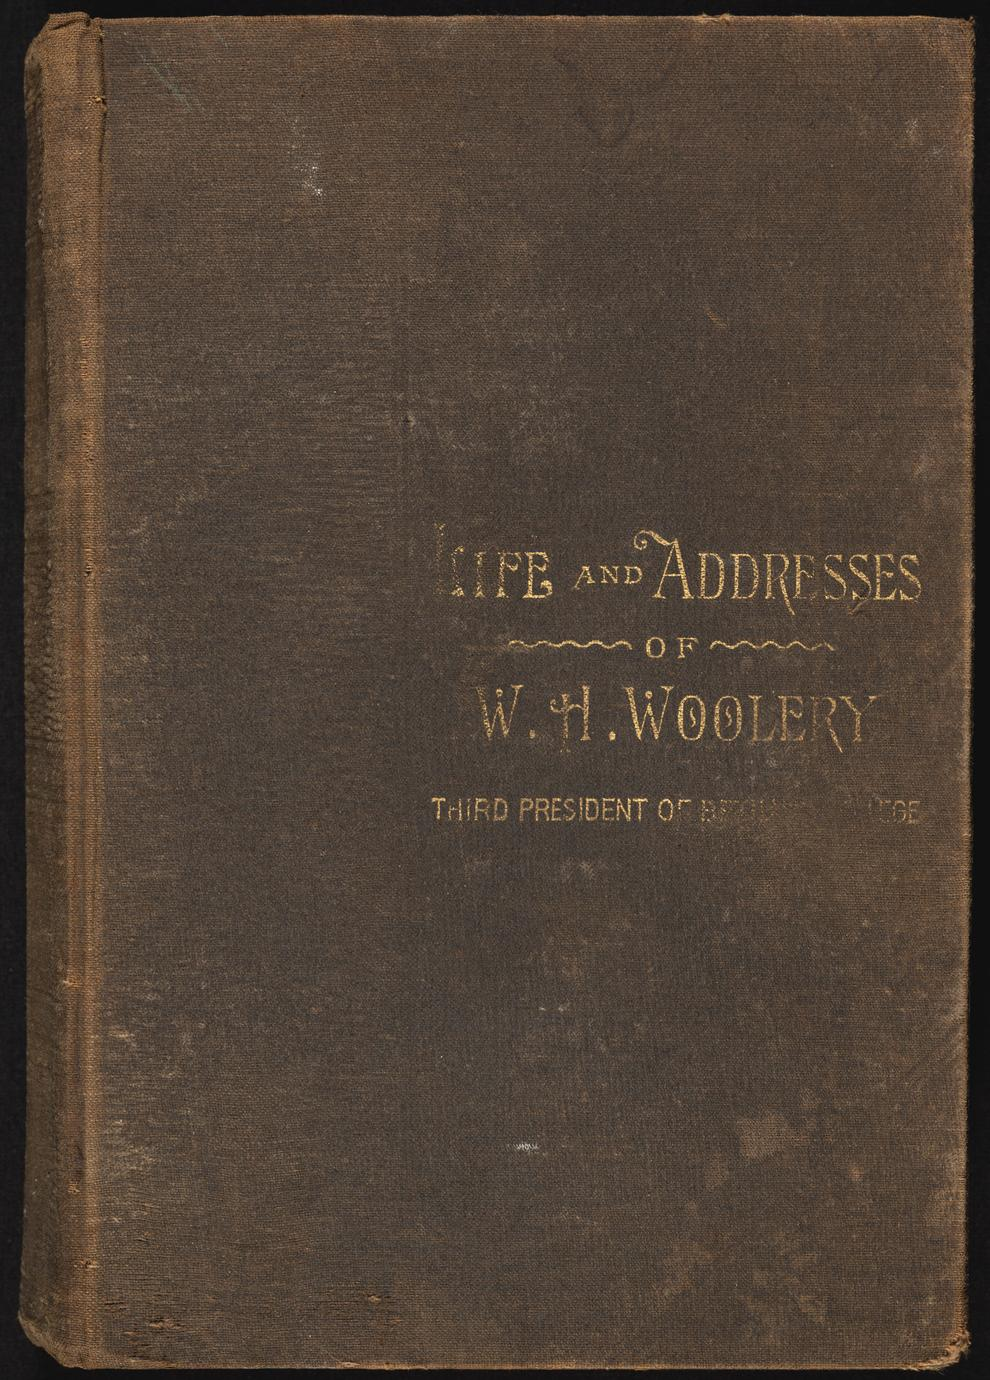 Life and addresses of W. H. Woolery, LL. D., third president of Bethany College (1 of 2)